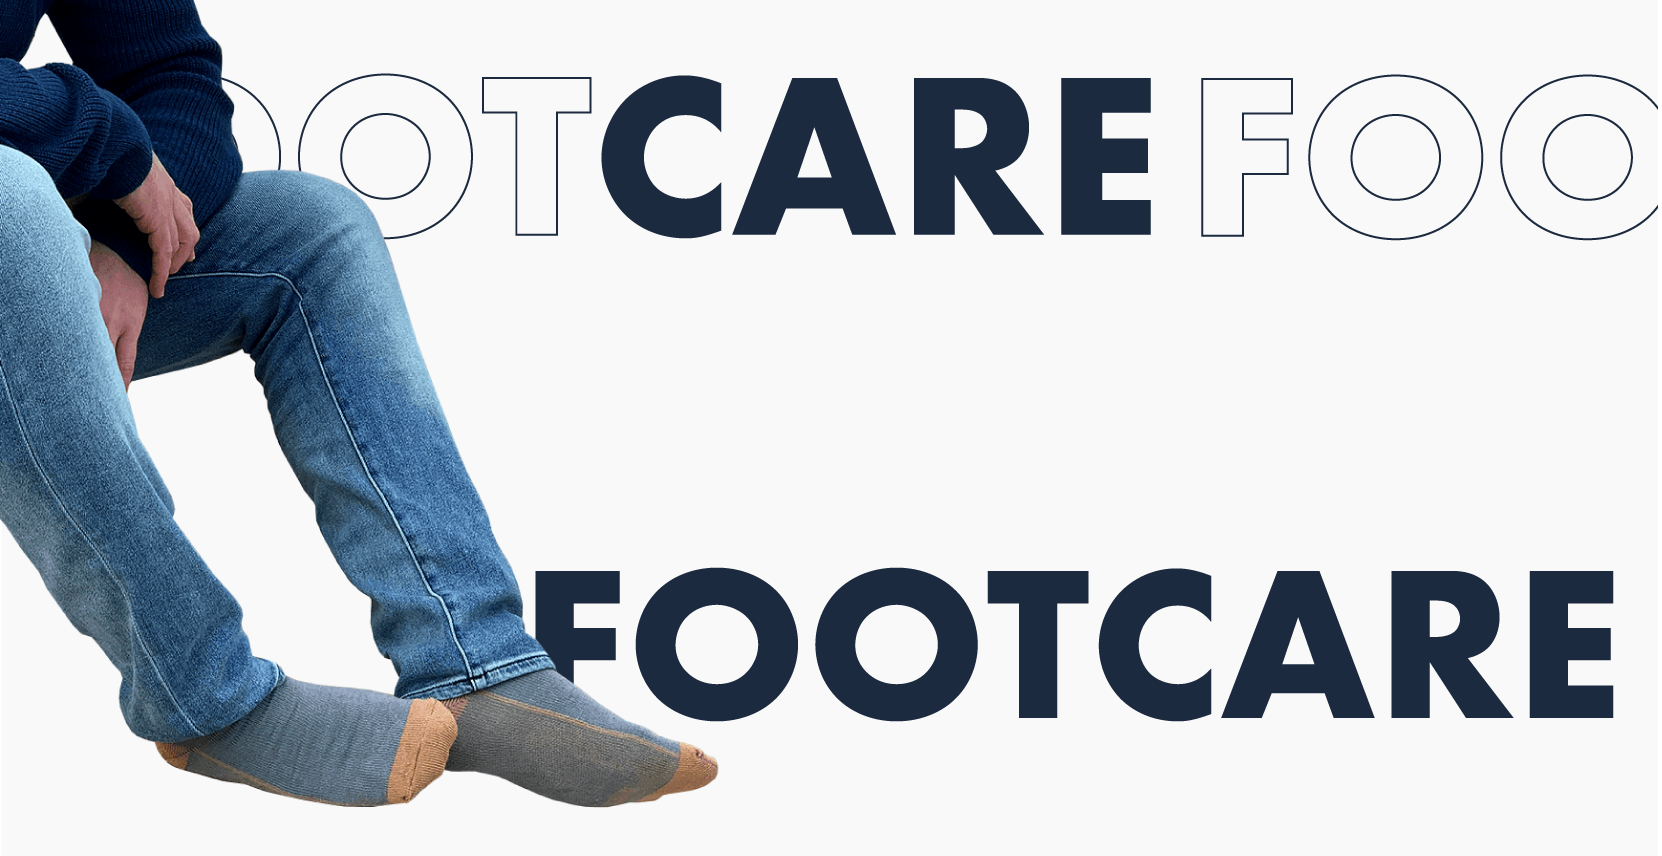 Glucology Diabetes Footcare